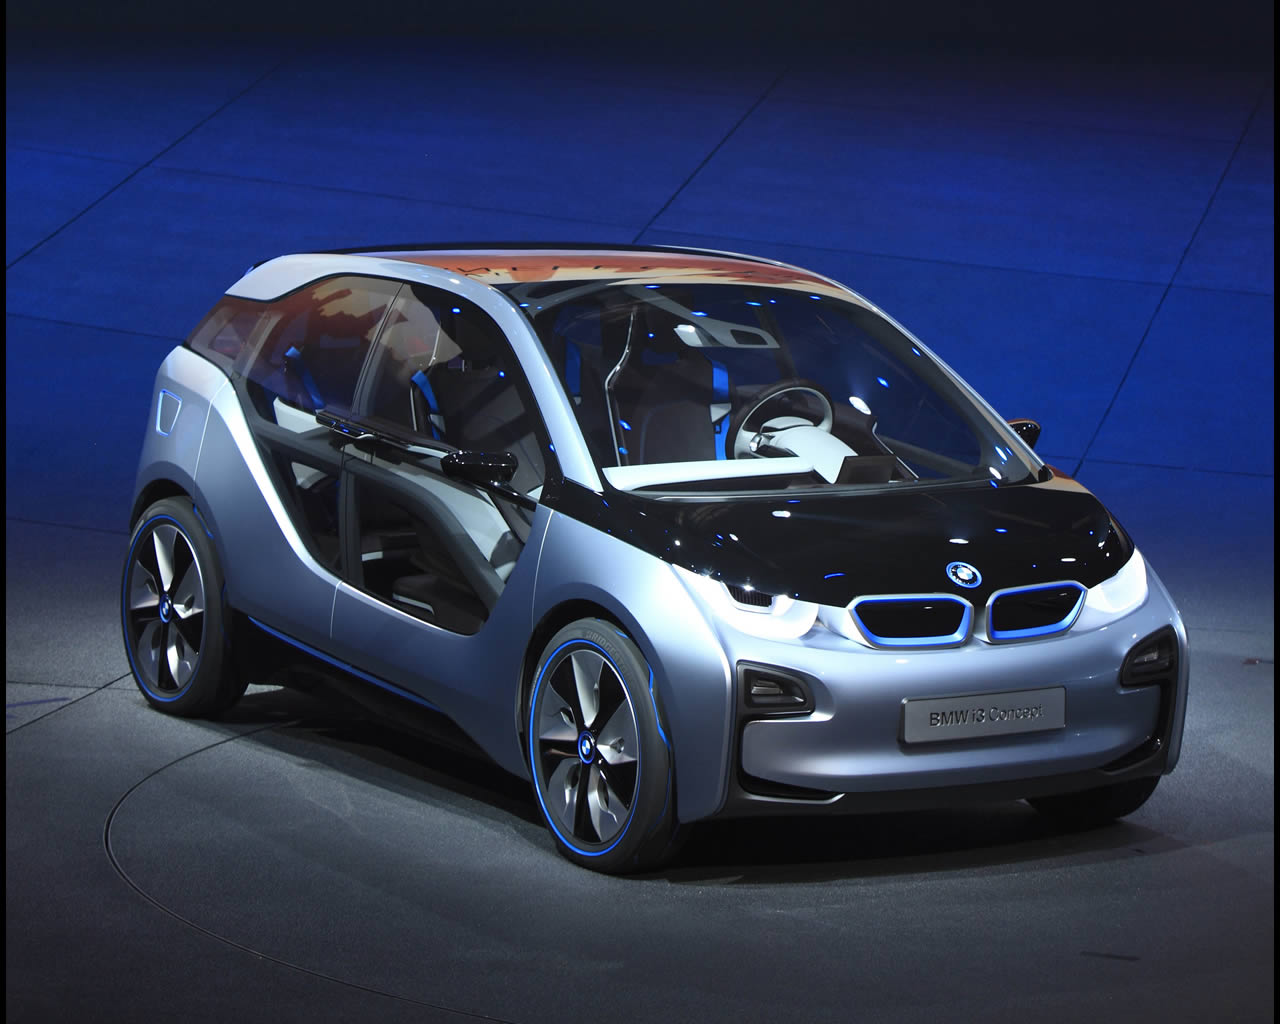 Bmw I3 Electric With Range Extender And I8 Plug In Full Hybrid Drive